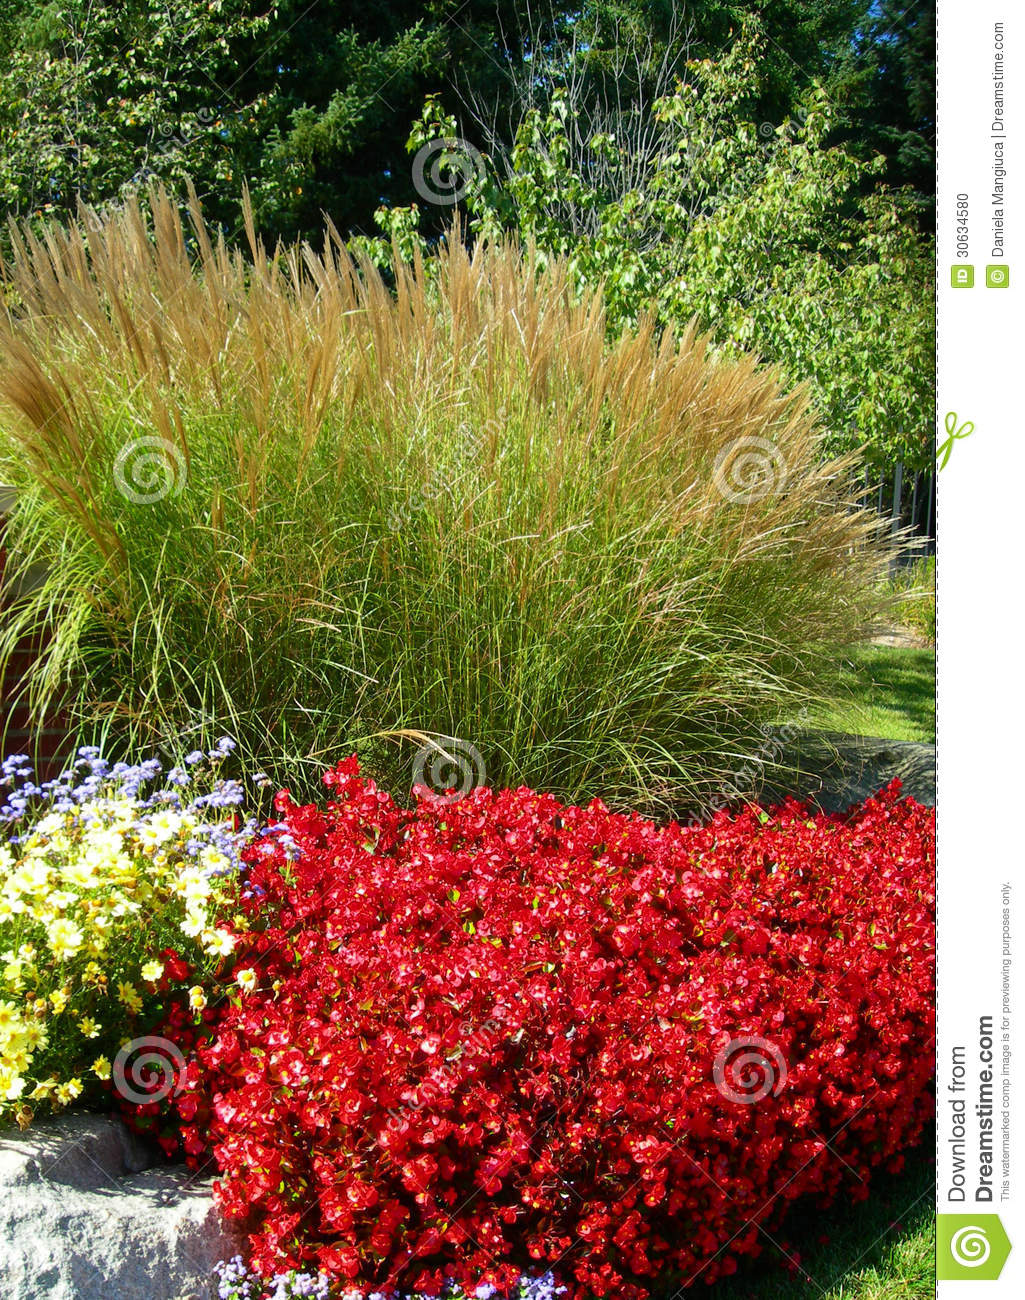 Ornamental green grass and red flower beds stock photo for Ornamental grass with red flowers